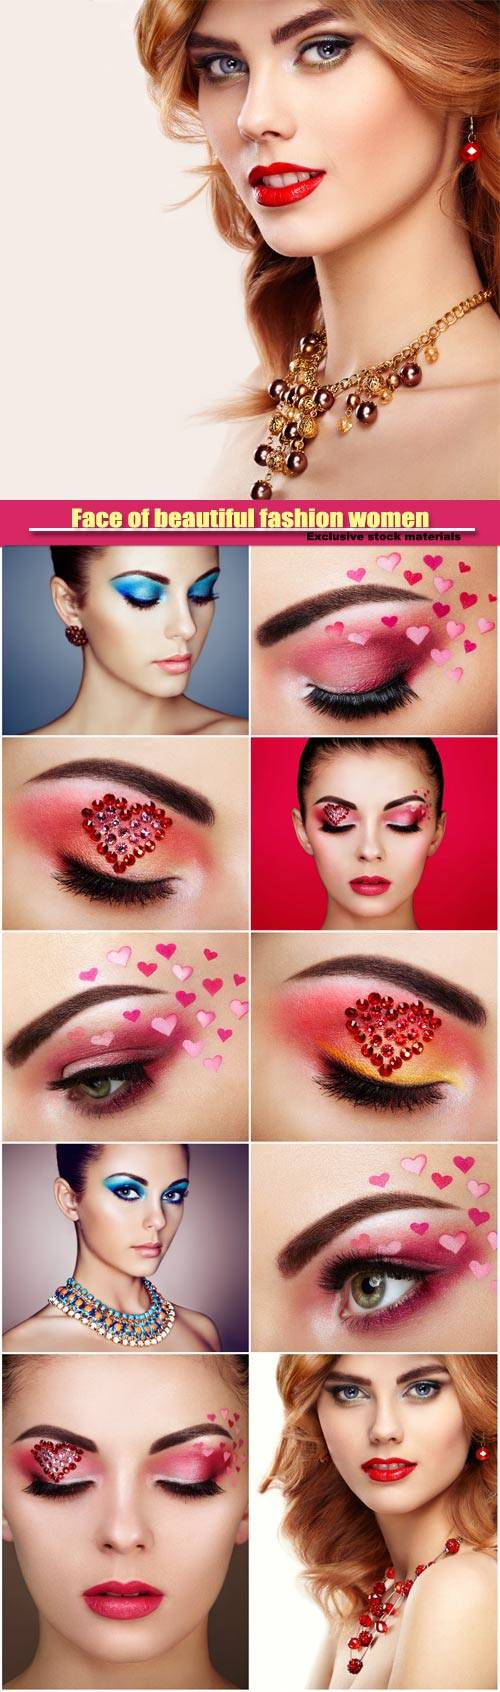 Face of beautiful fashion women with holiday makeup heart